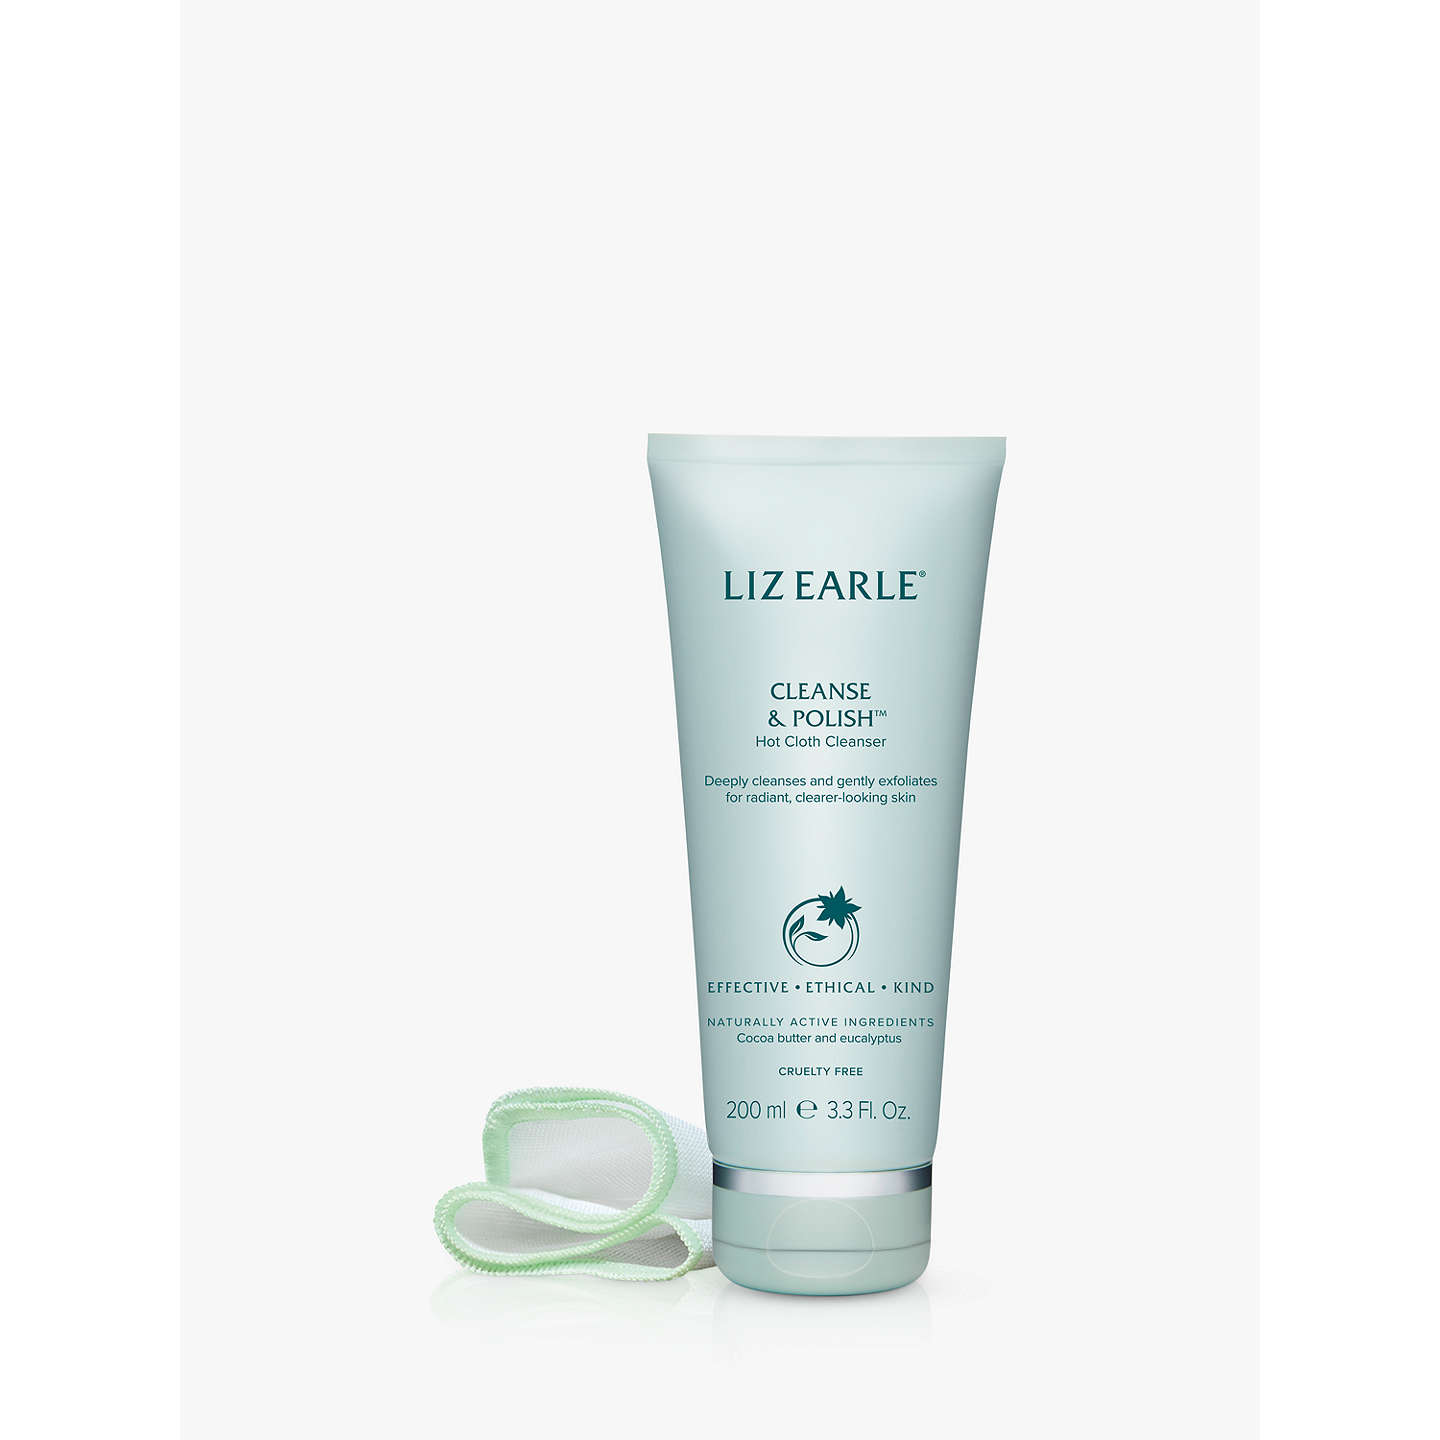 Liz Earle Cleanse & Polish™ Hot Cloth Cleanser, 200ml With 2 Cotton Cloths by Liz Earle